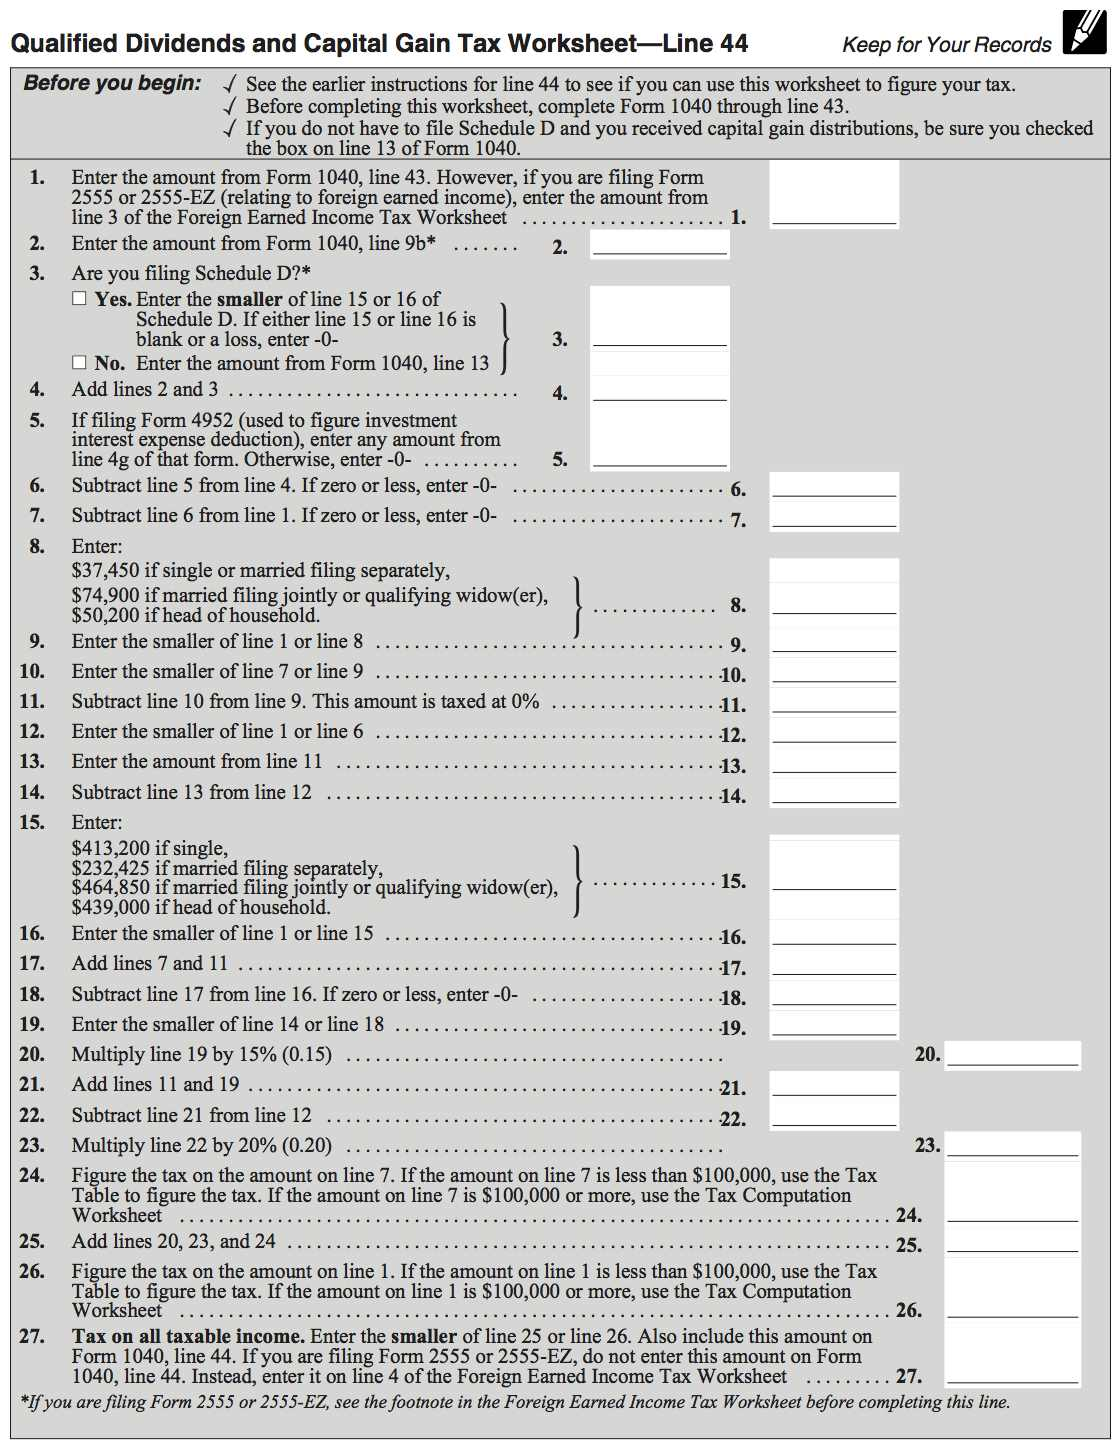 Qualified Dividend And Capital Gain Tax Worksheet - Davezan